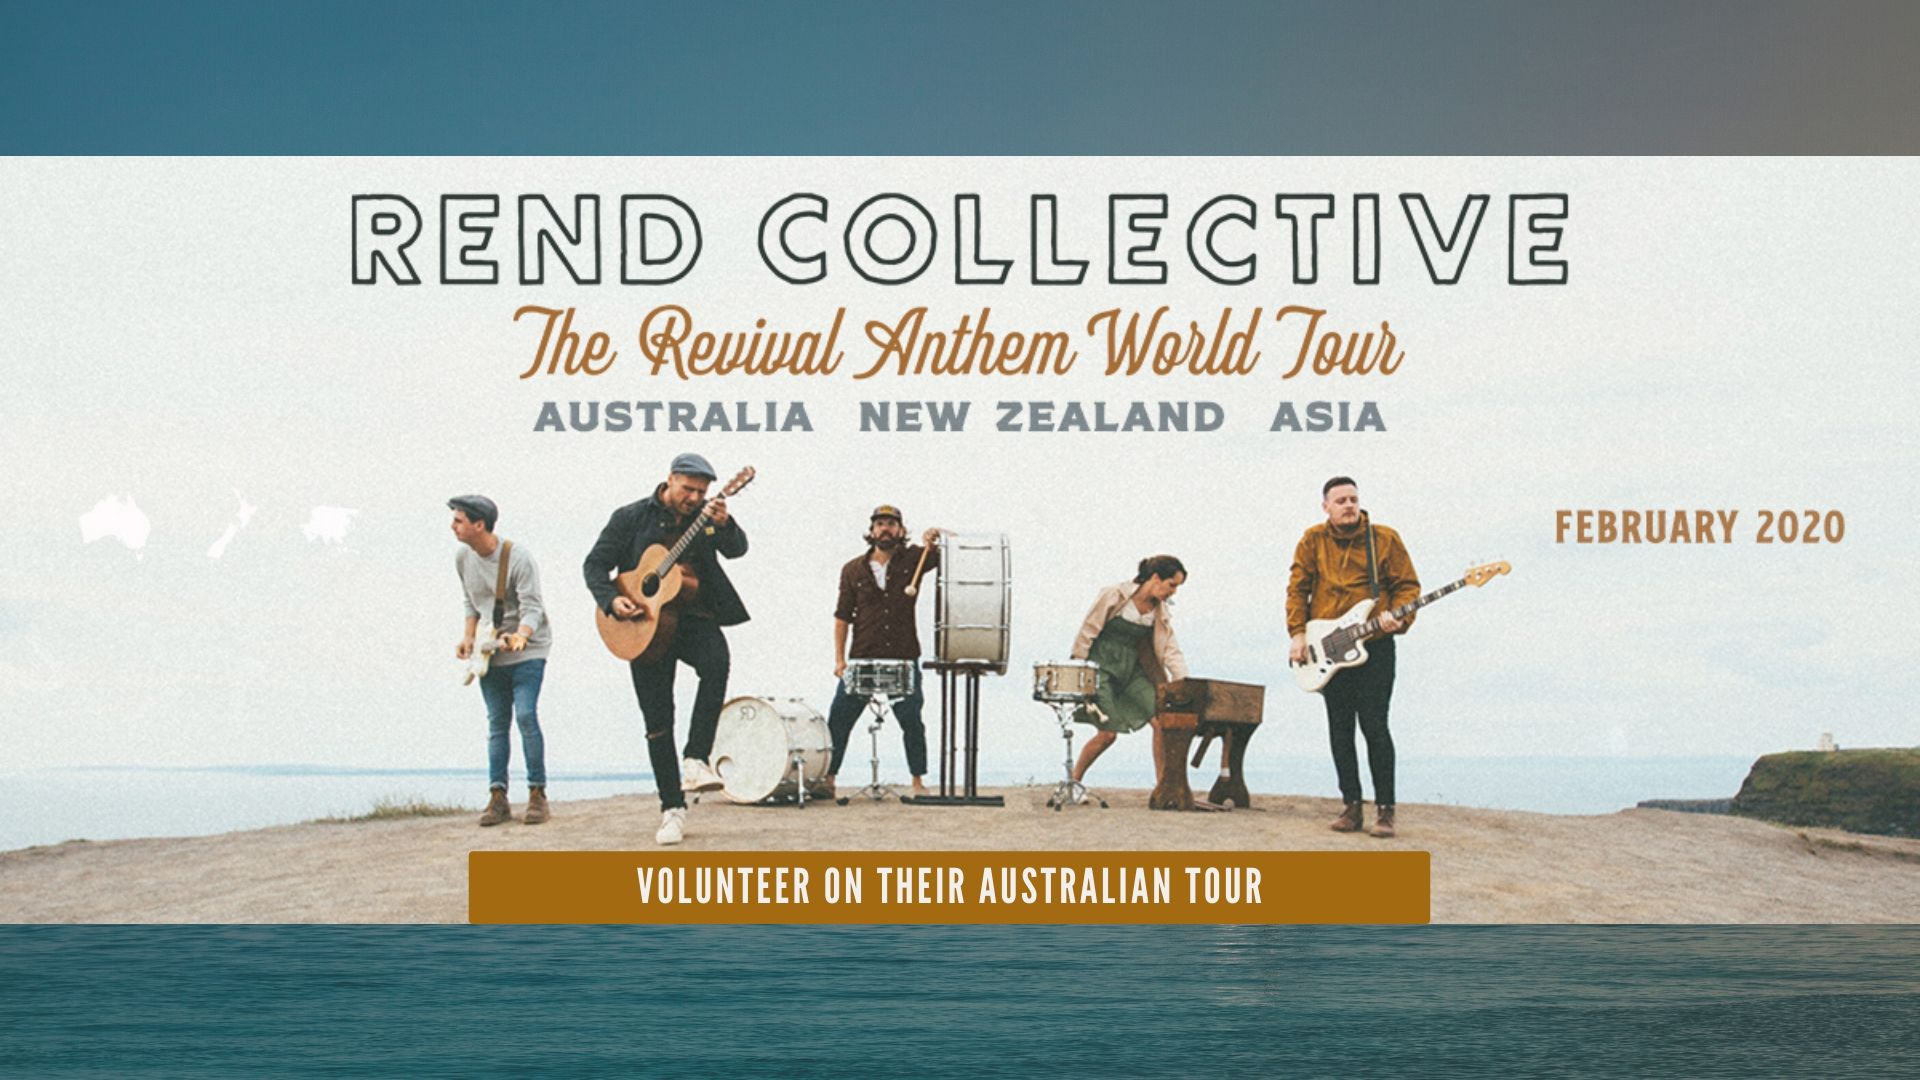 Are You Able to Join the Rend Collective?